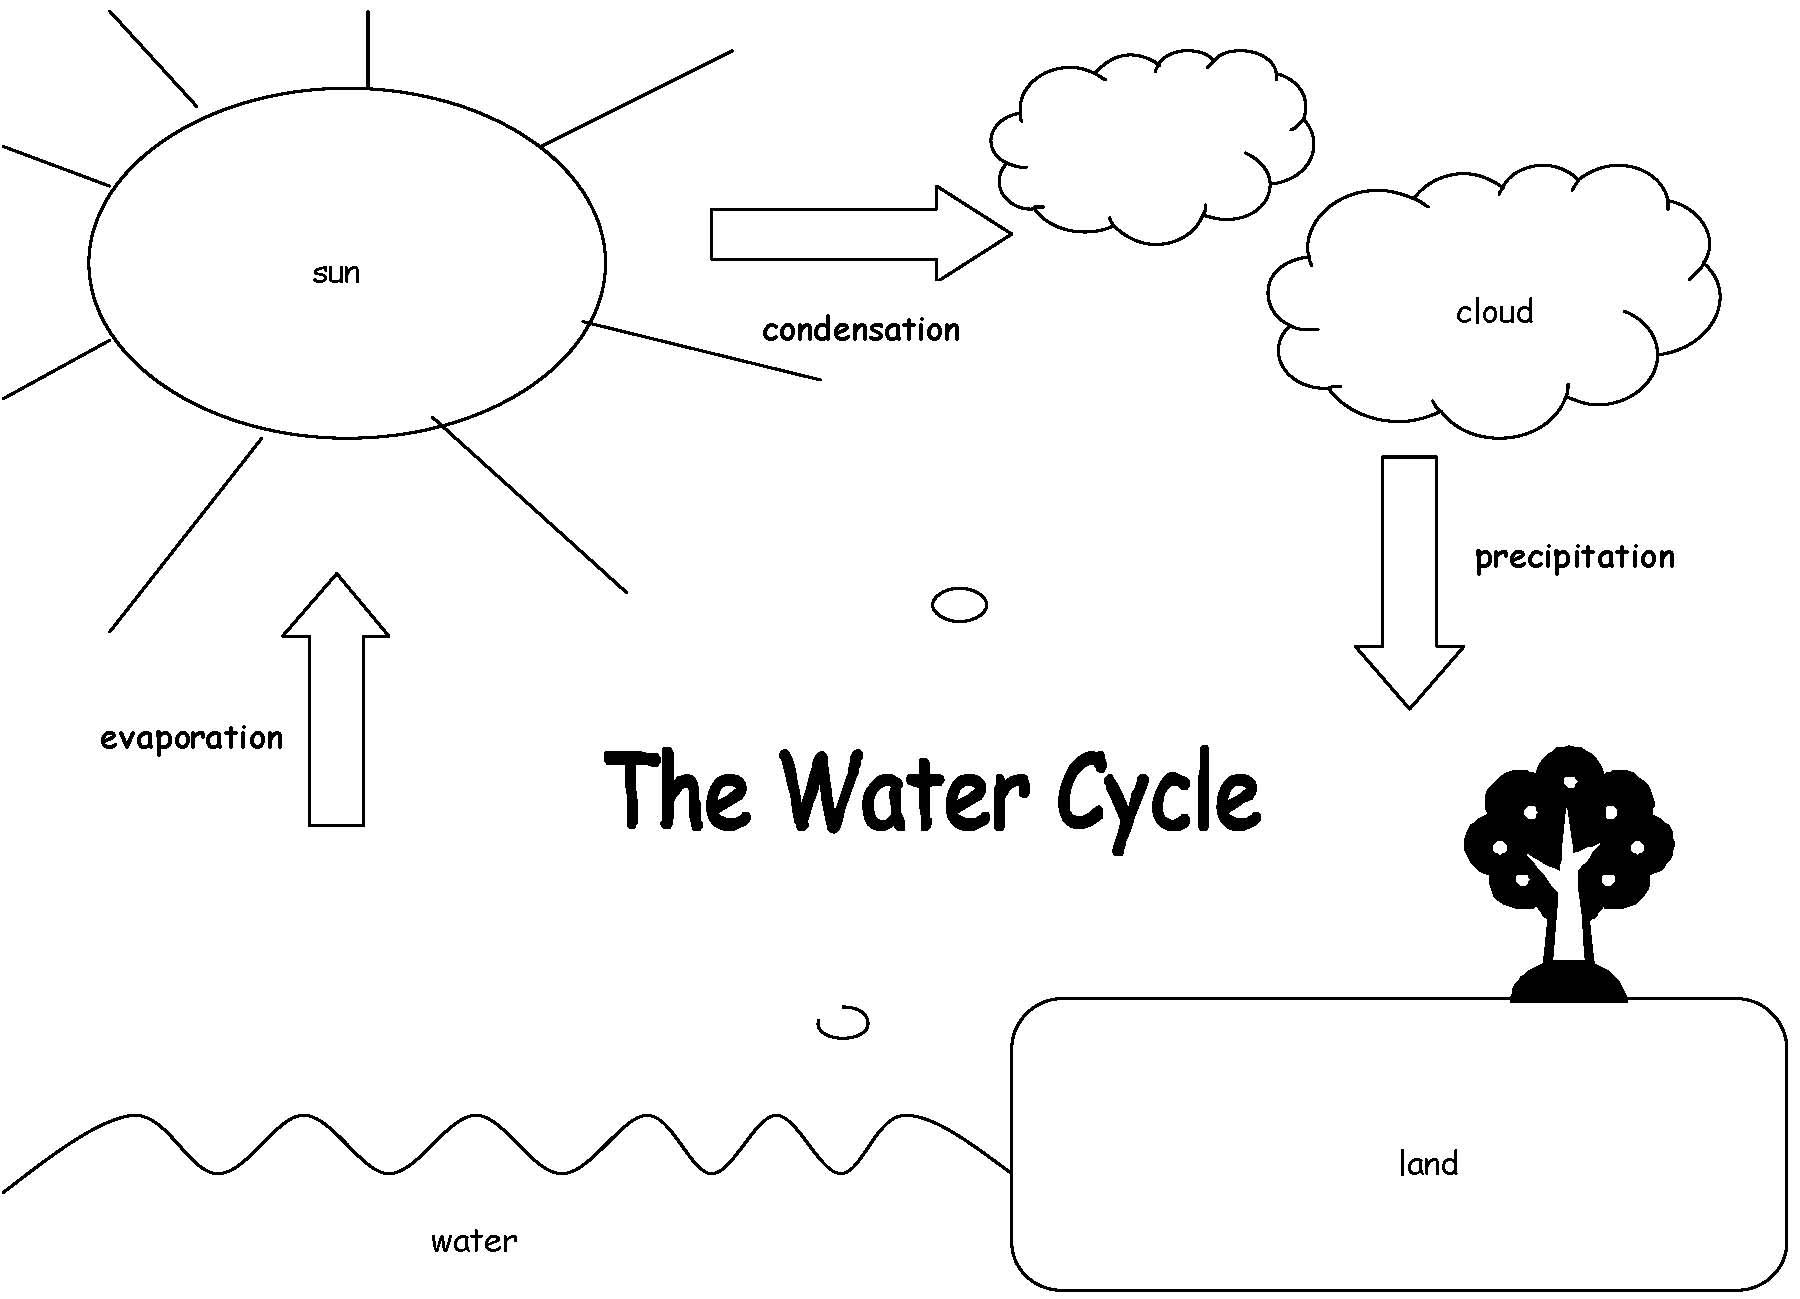 water cycle coloring pages The Coloring Pages Water Cycle and